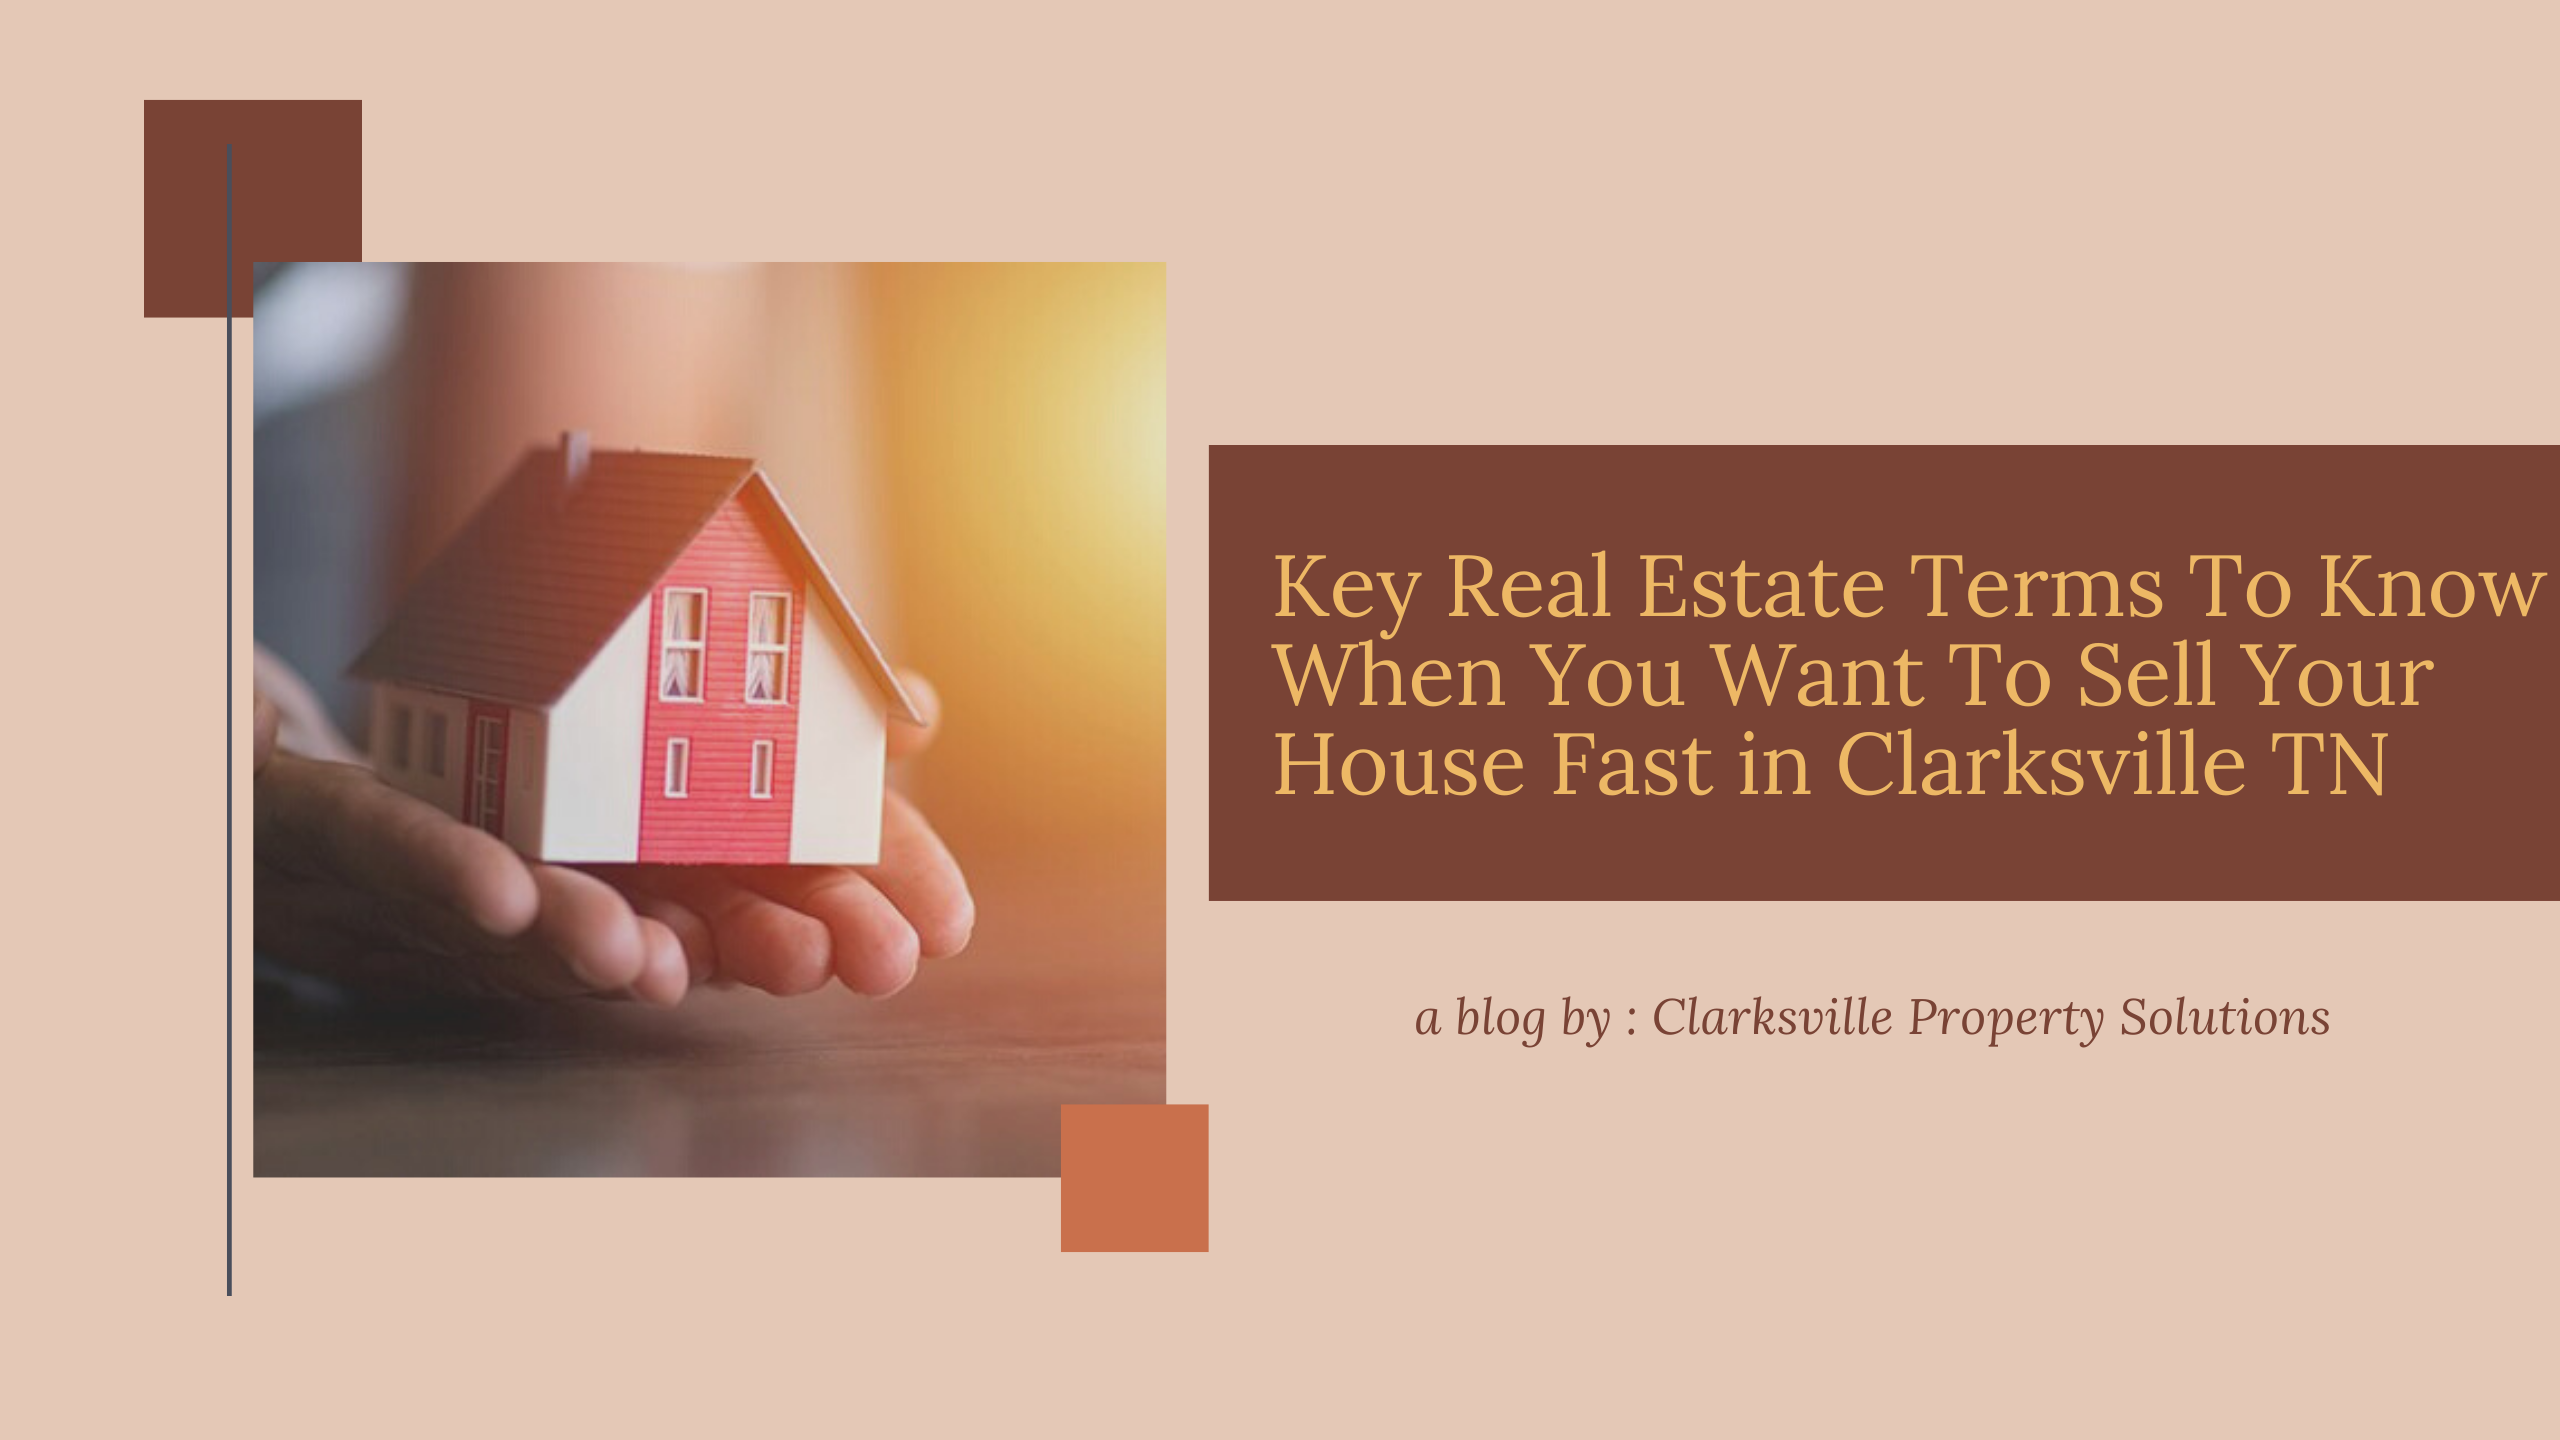 Key Real Estate Terms To Know When You Want To Sell Your House Fast in Clarksville TN